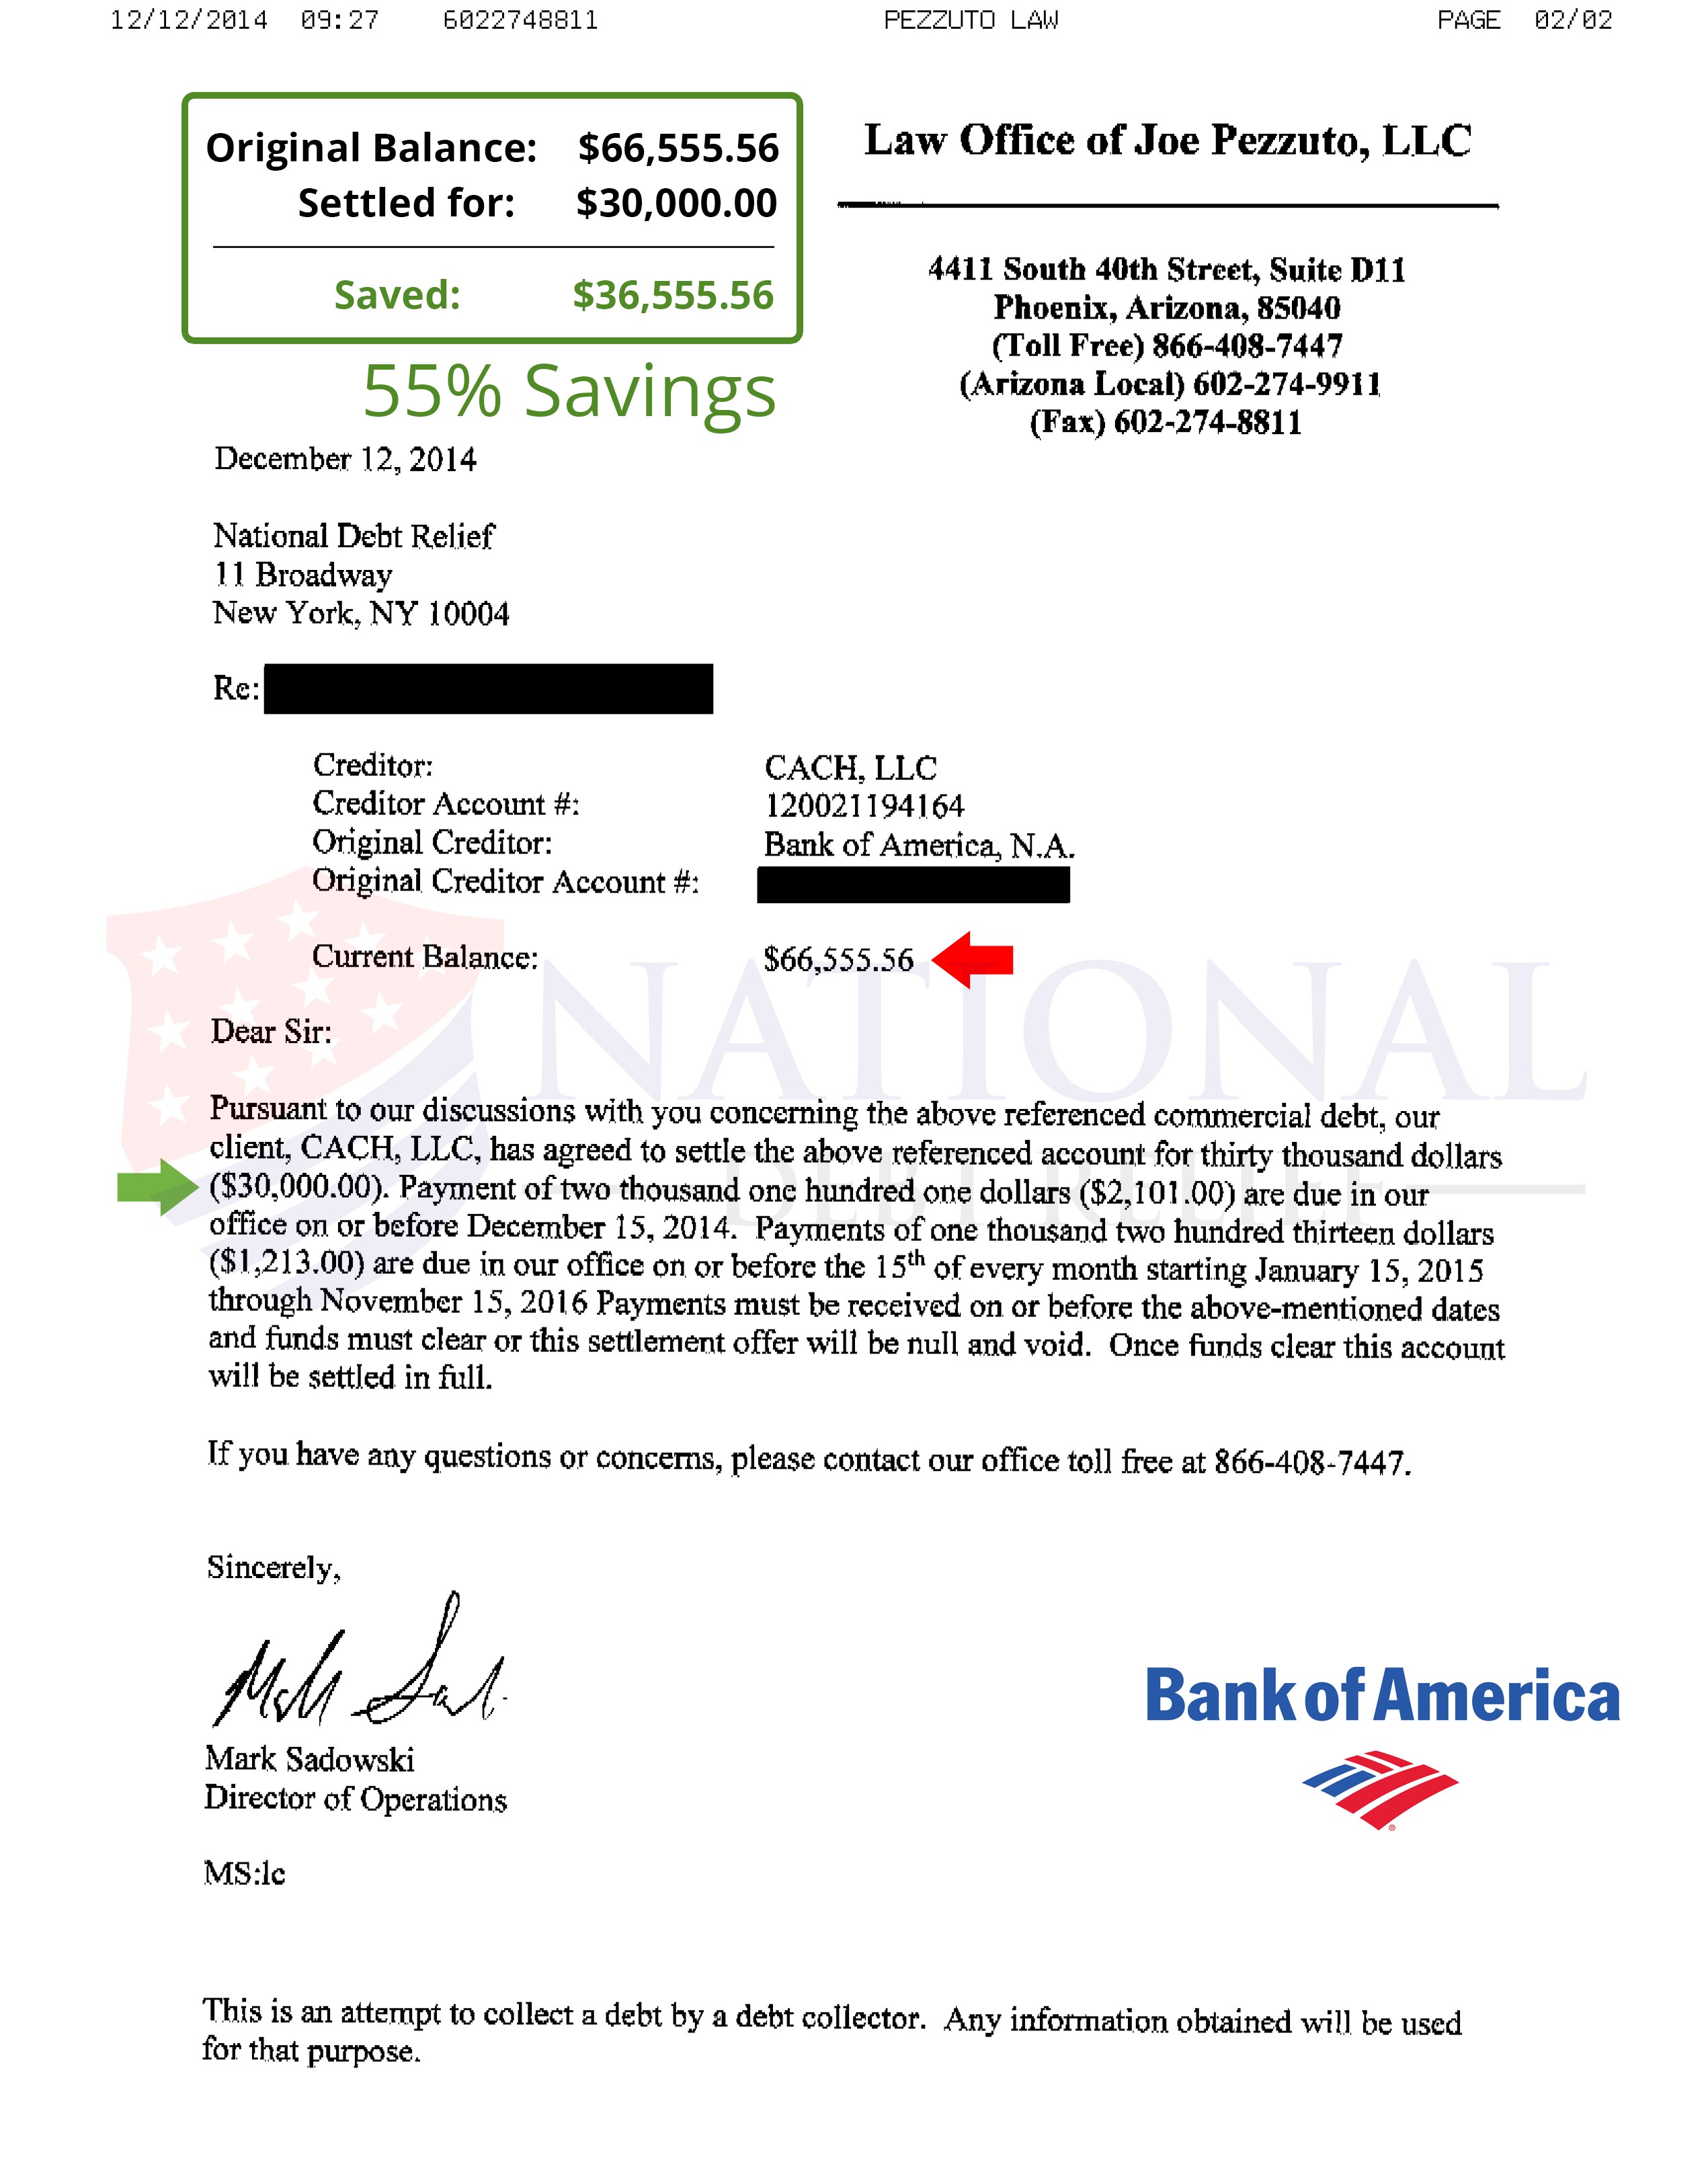 Debt settlement letters bank of america 55 savings 2 spiritdancerdesigns